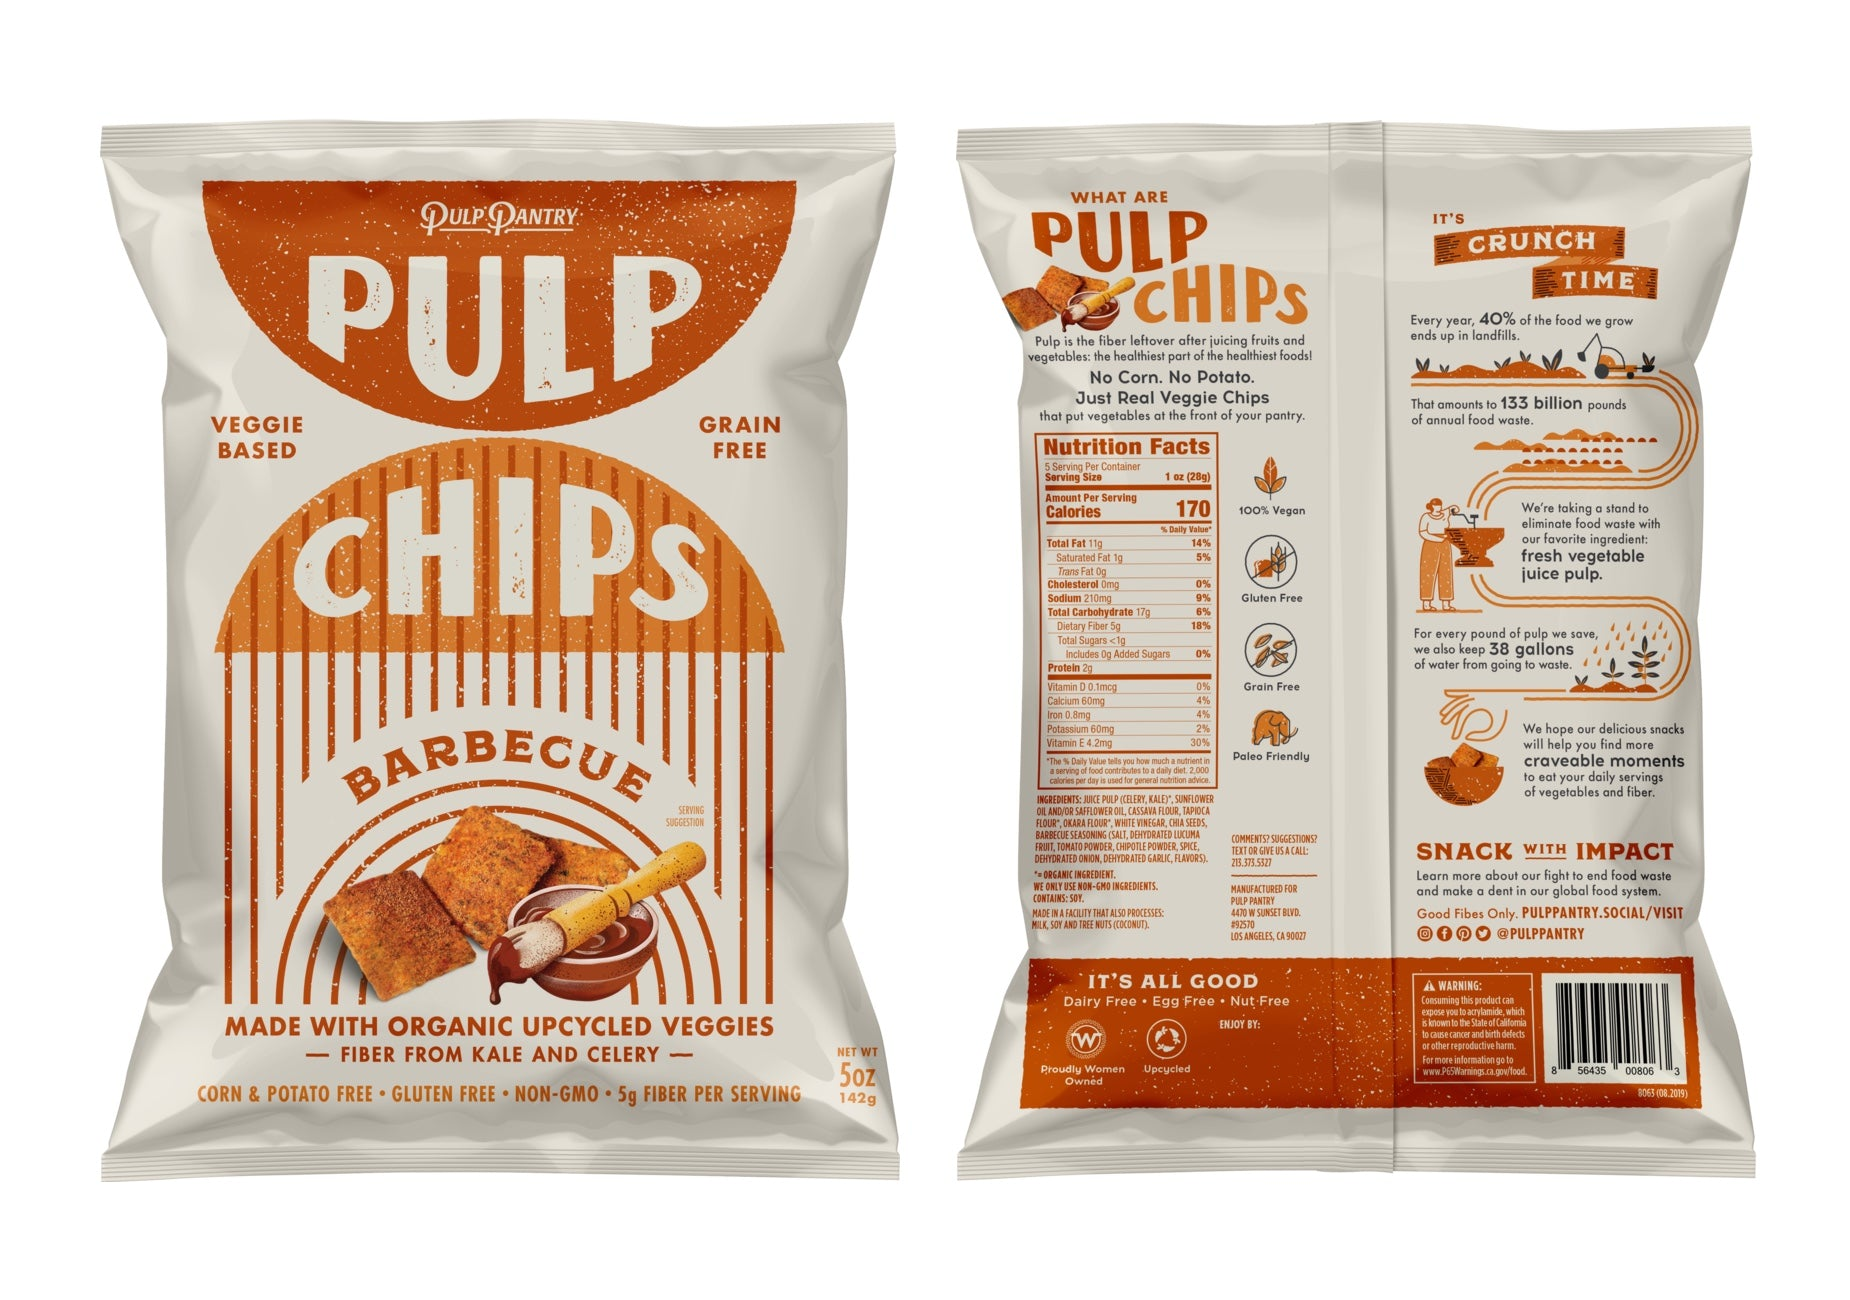 Detailed image of Pulp Chips packaging, front and back of the bag